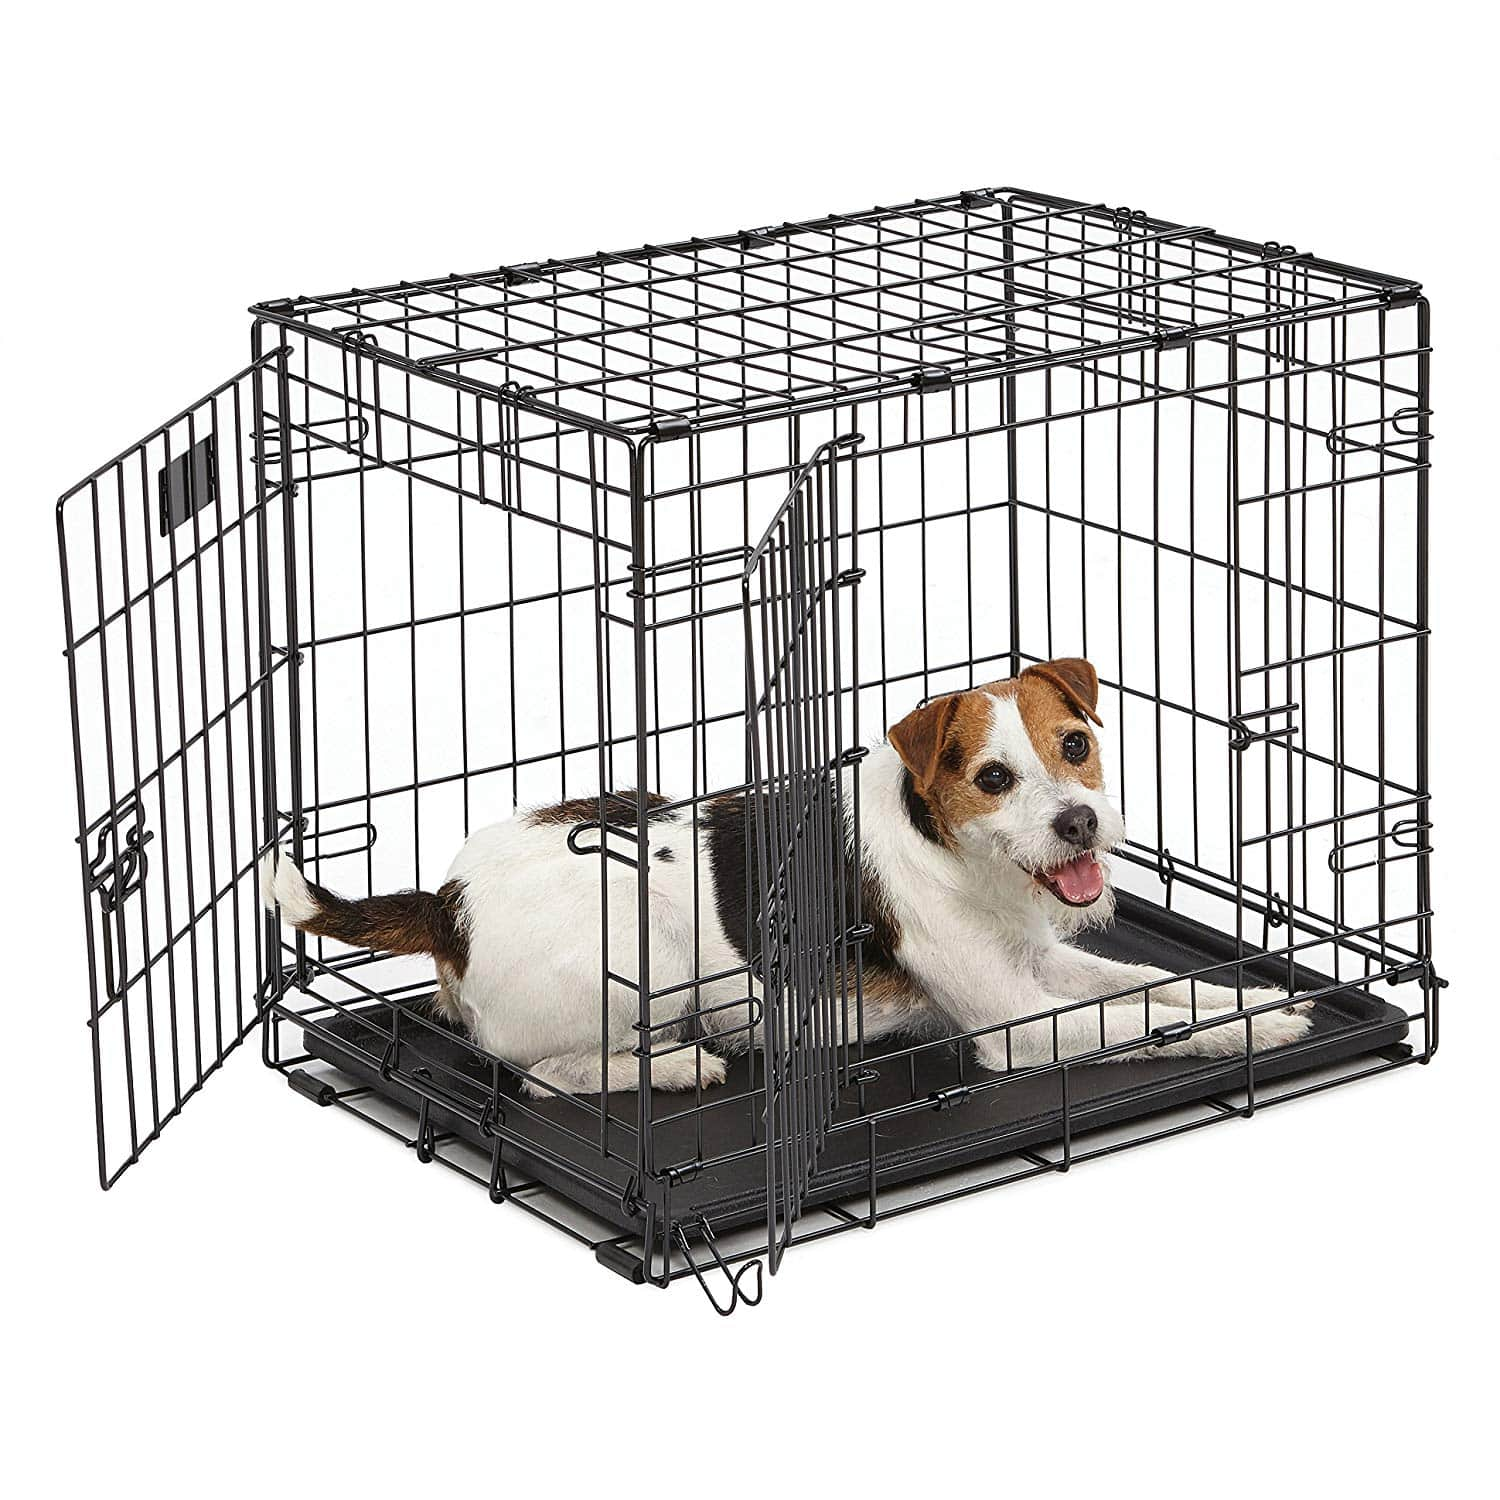 MidWest Homes for Pets Dog Crate 24-in. with divider and double door - $15.38 at Amazon + FS with Prime